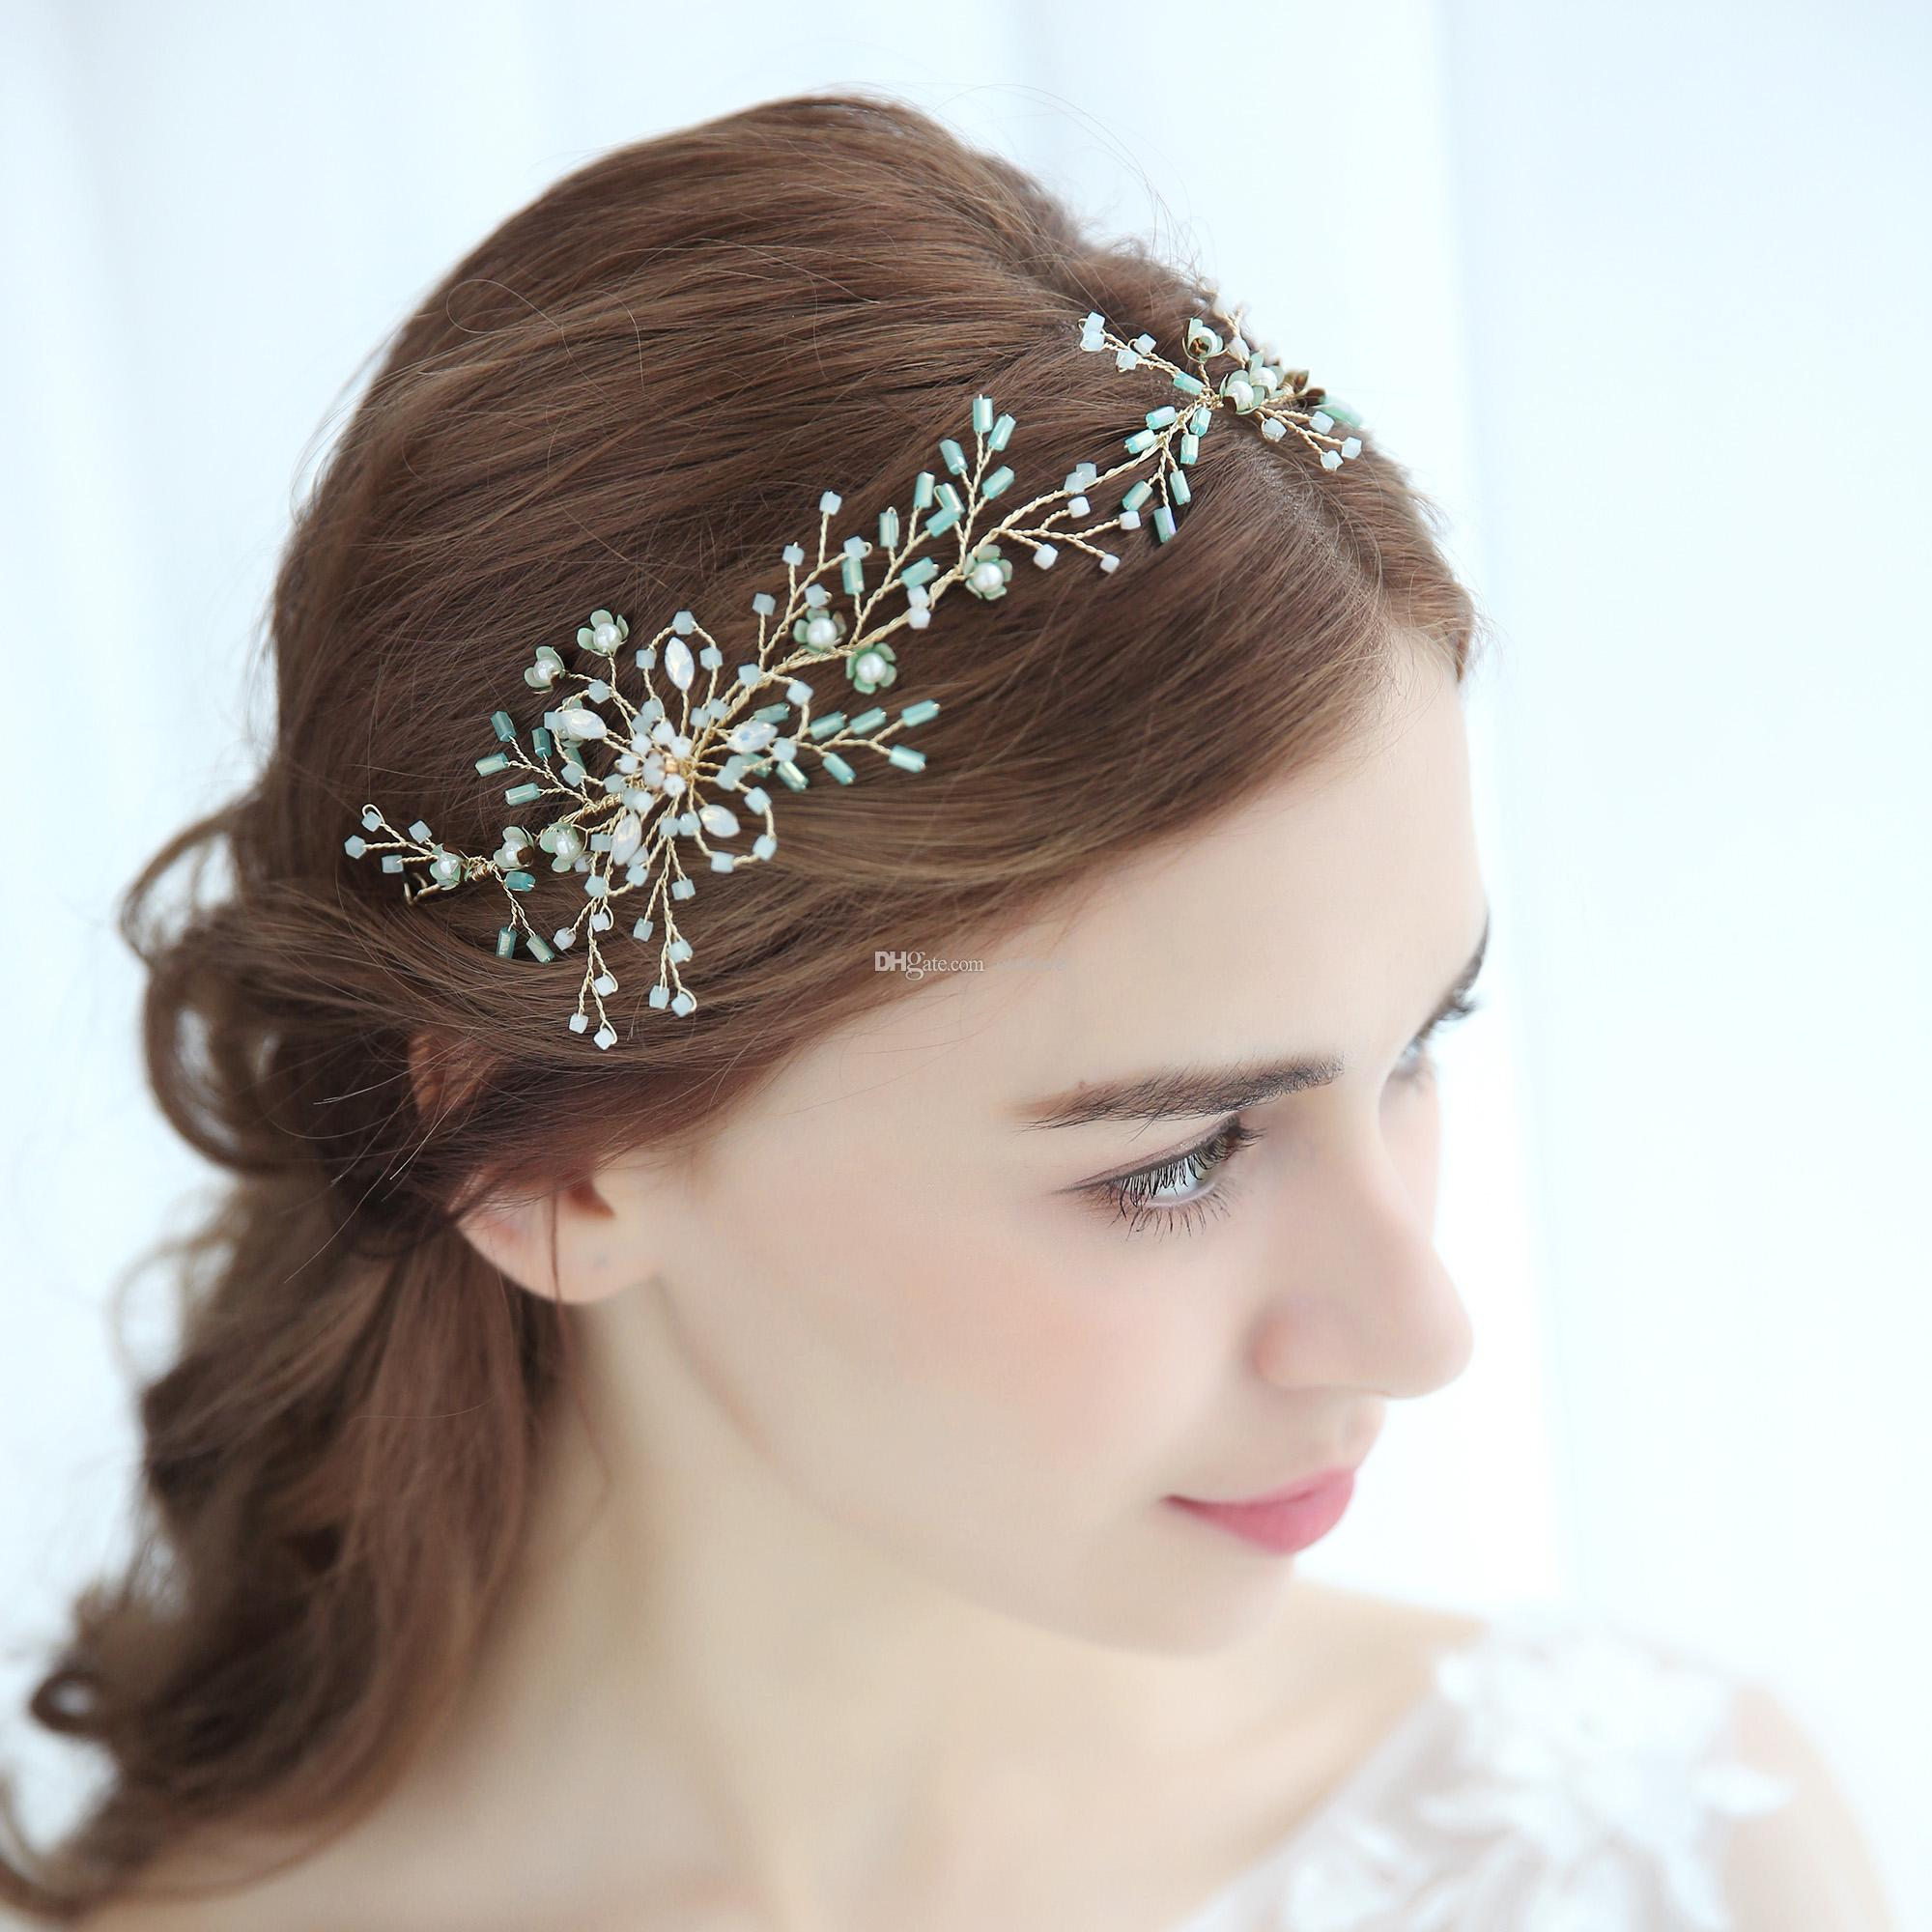 Flower Wedding Headpieces: Baby Blue Hair Vine Bridal Headpiece Ethereal Crystal